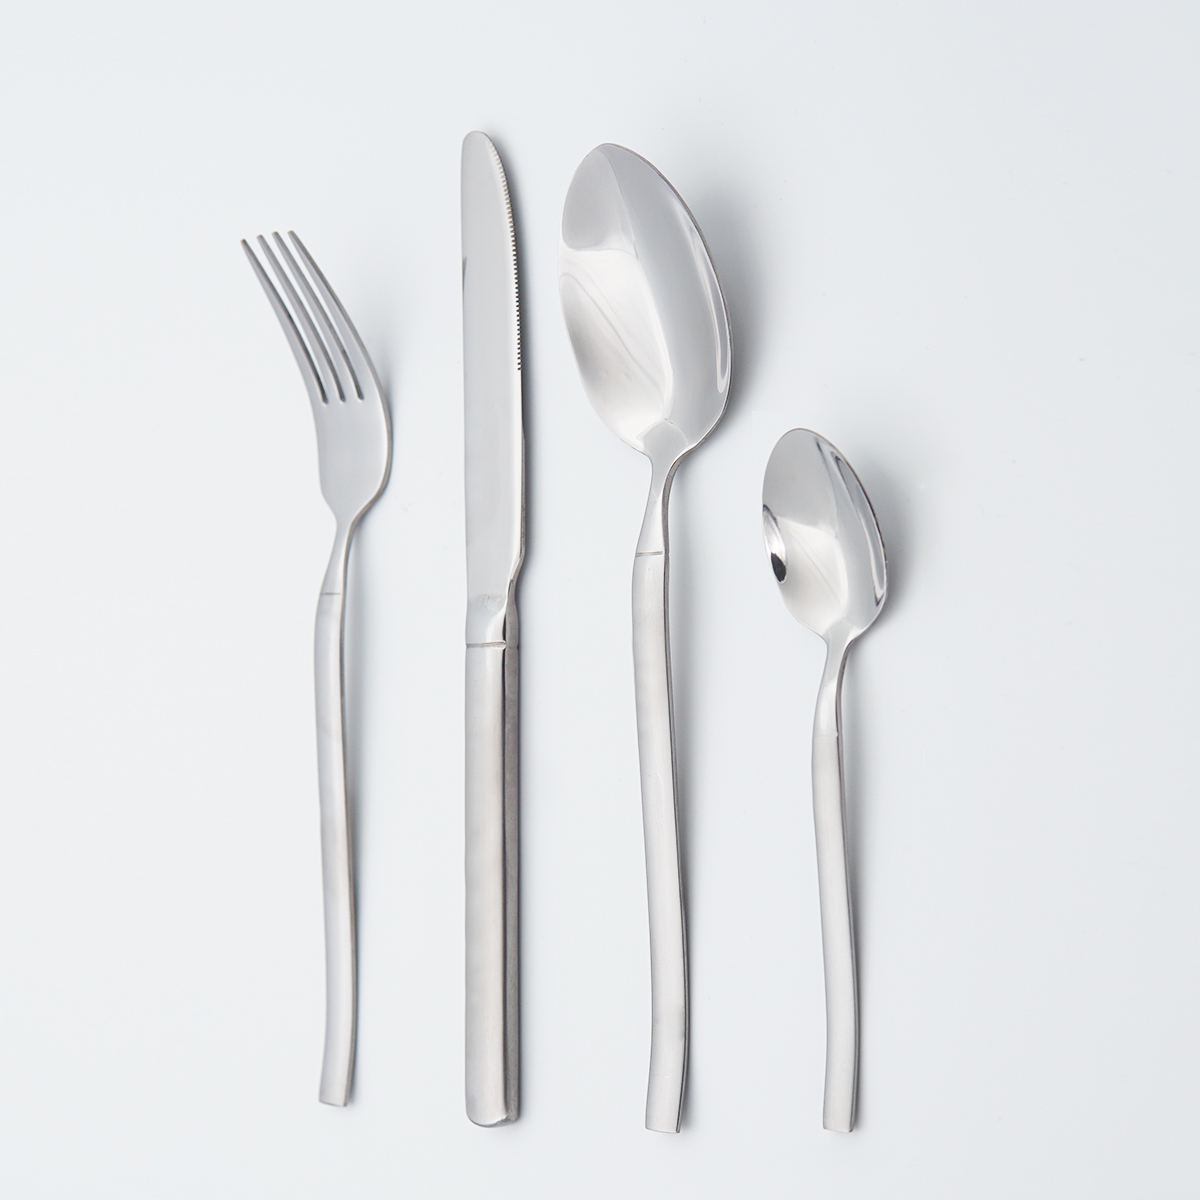 High Grade silverware flatware 18/10 Stainless Steel cutlery set For Wedding Restaurant